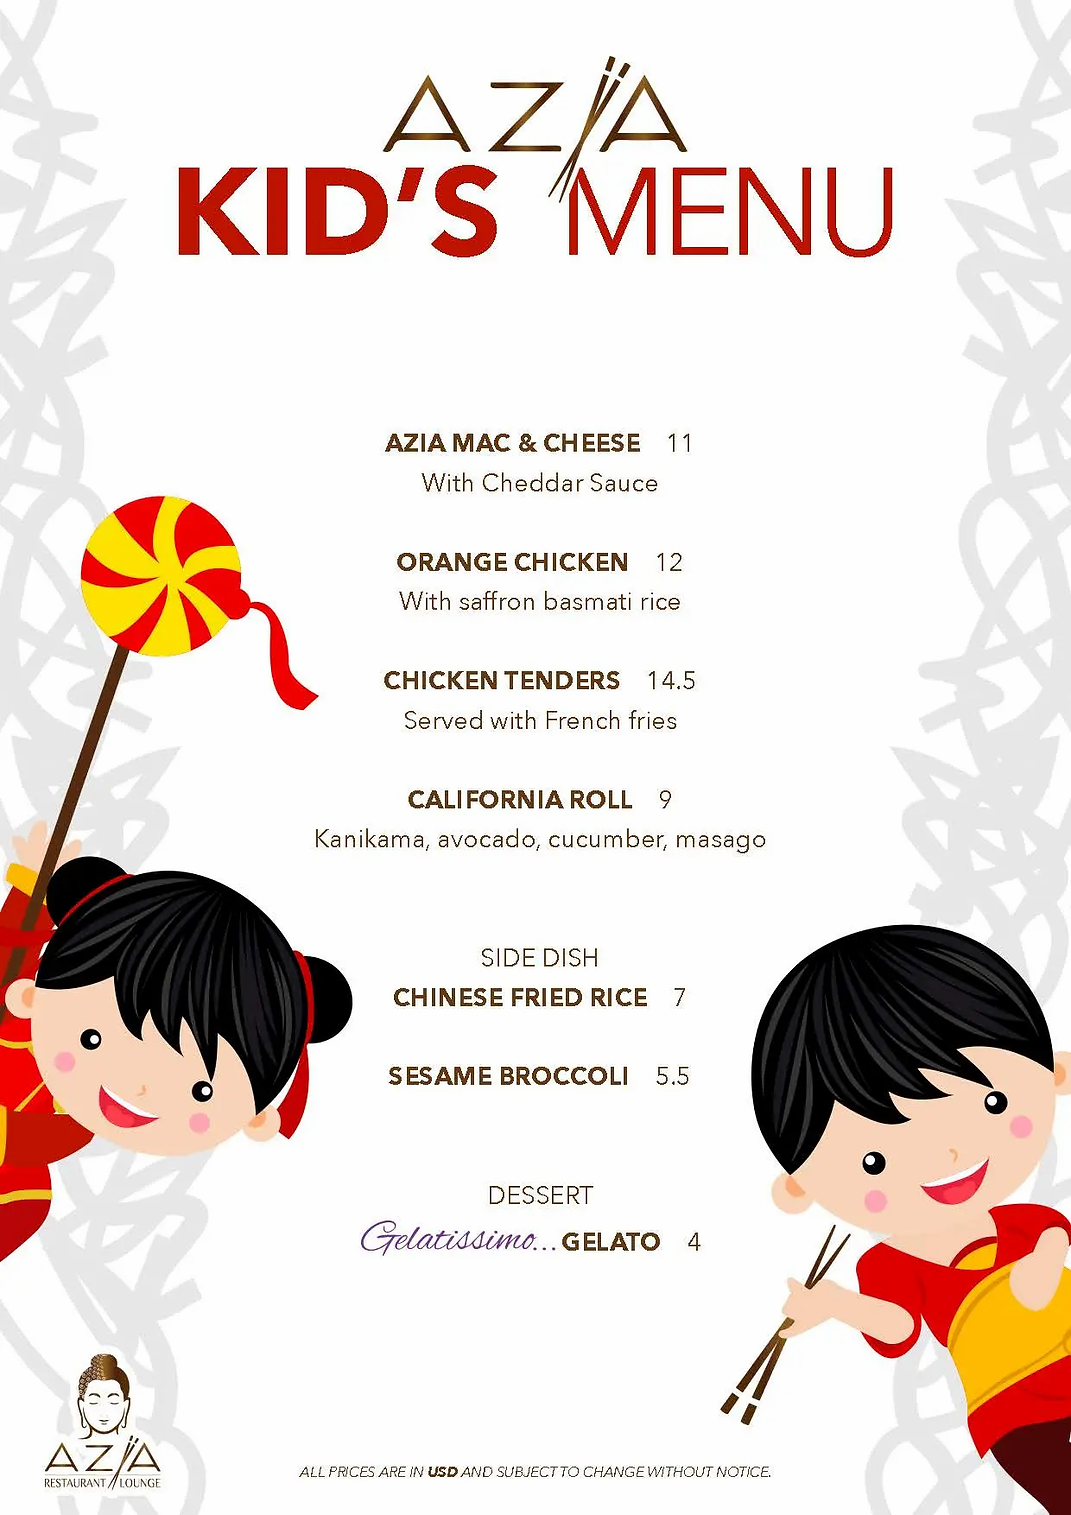 Azia-Kids-Menu-122320.webp